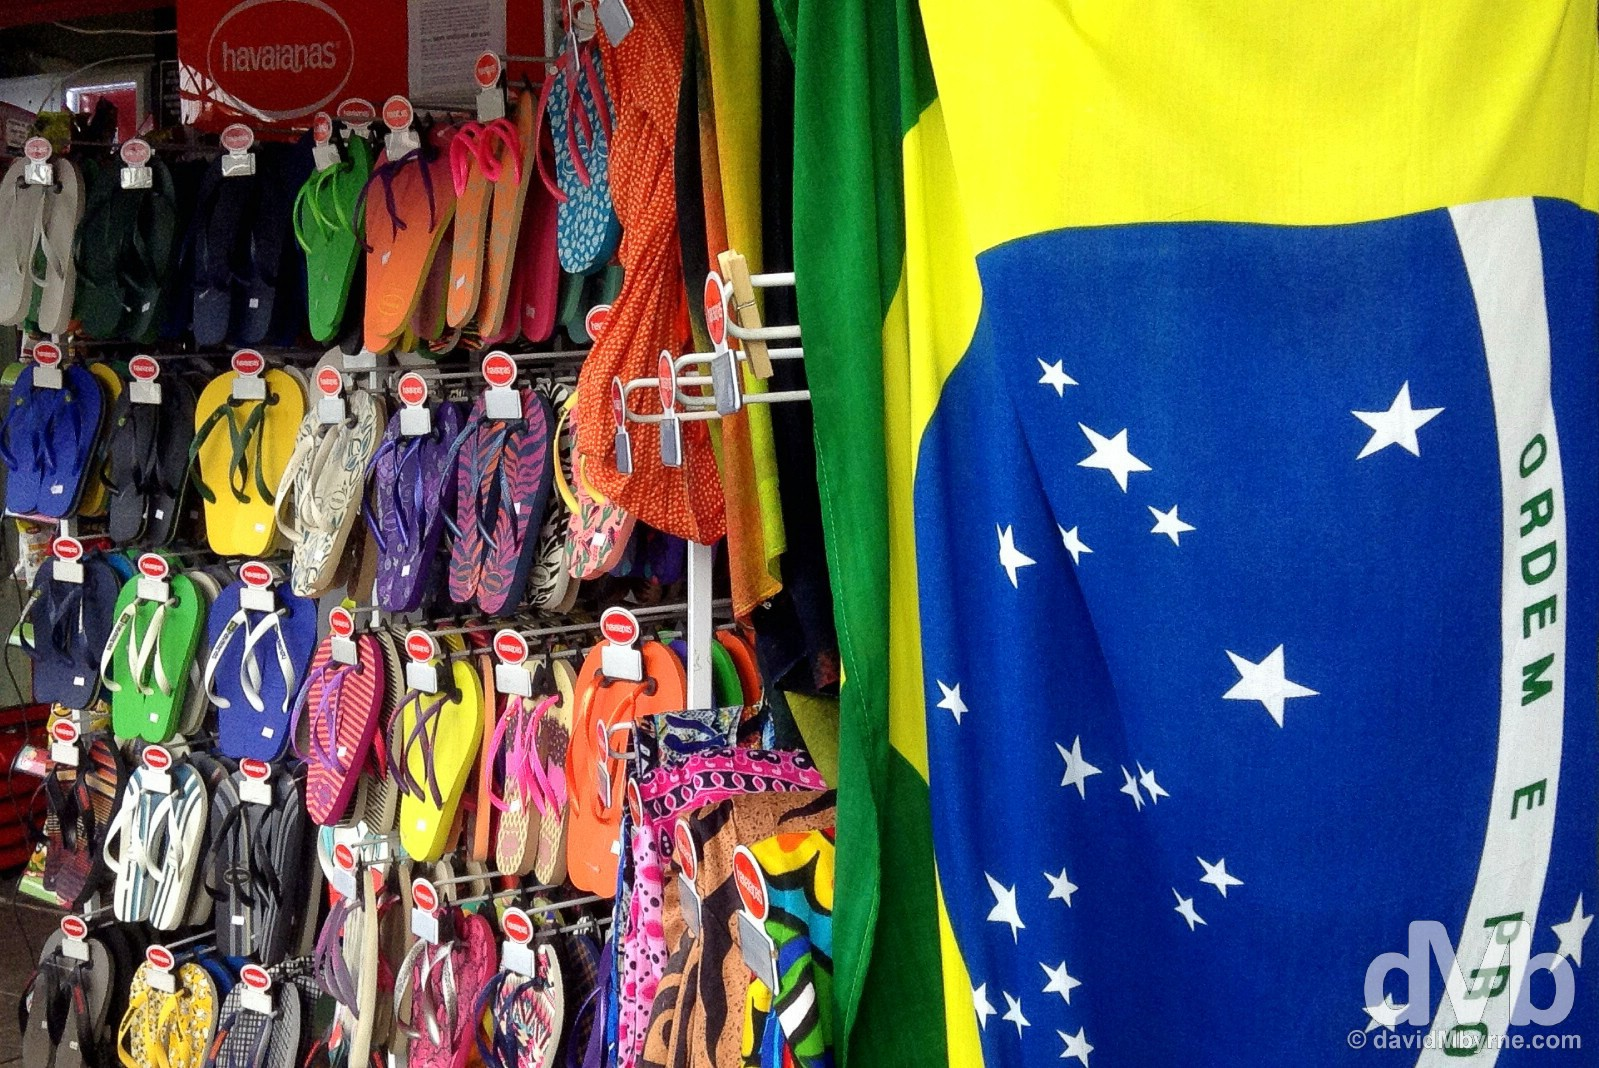 Havaianas for sale in Centrinho da Lagoa on Ilah Santa Catarina, Brazil. September 16, 2015.